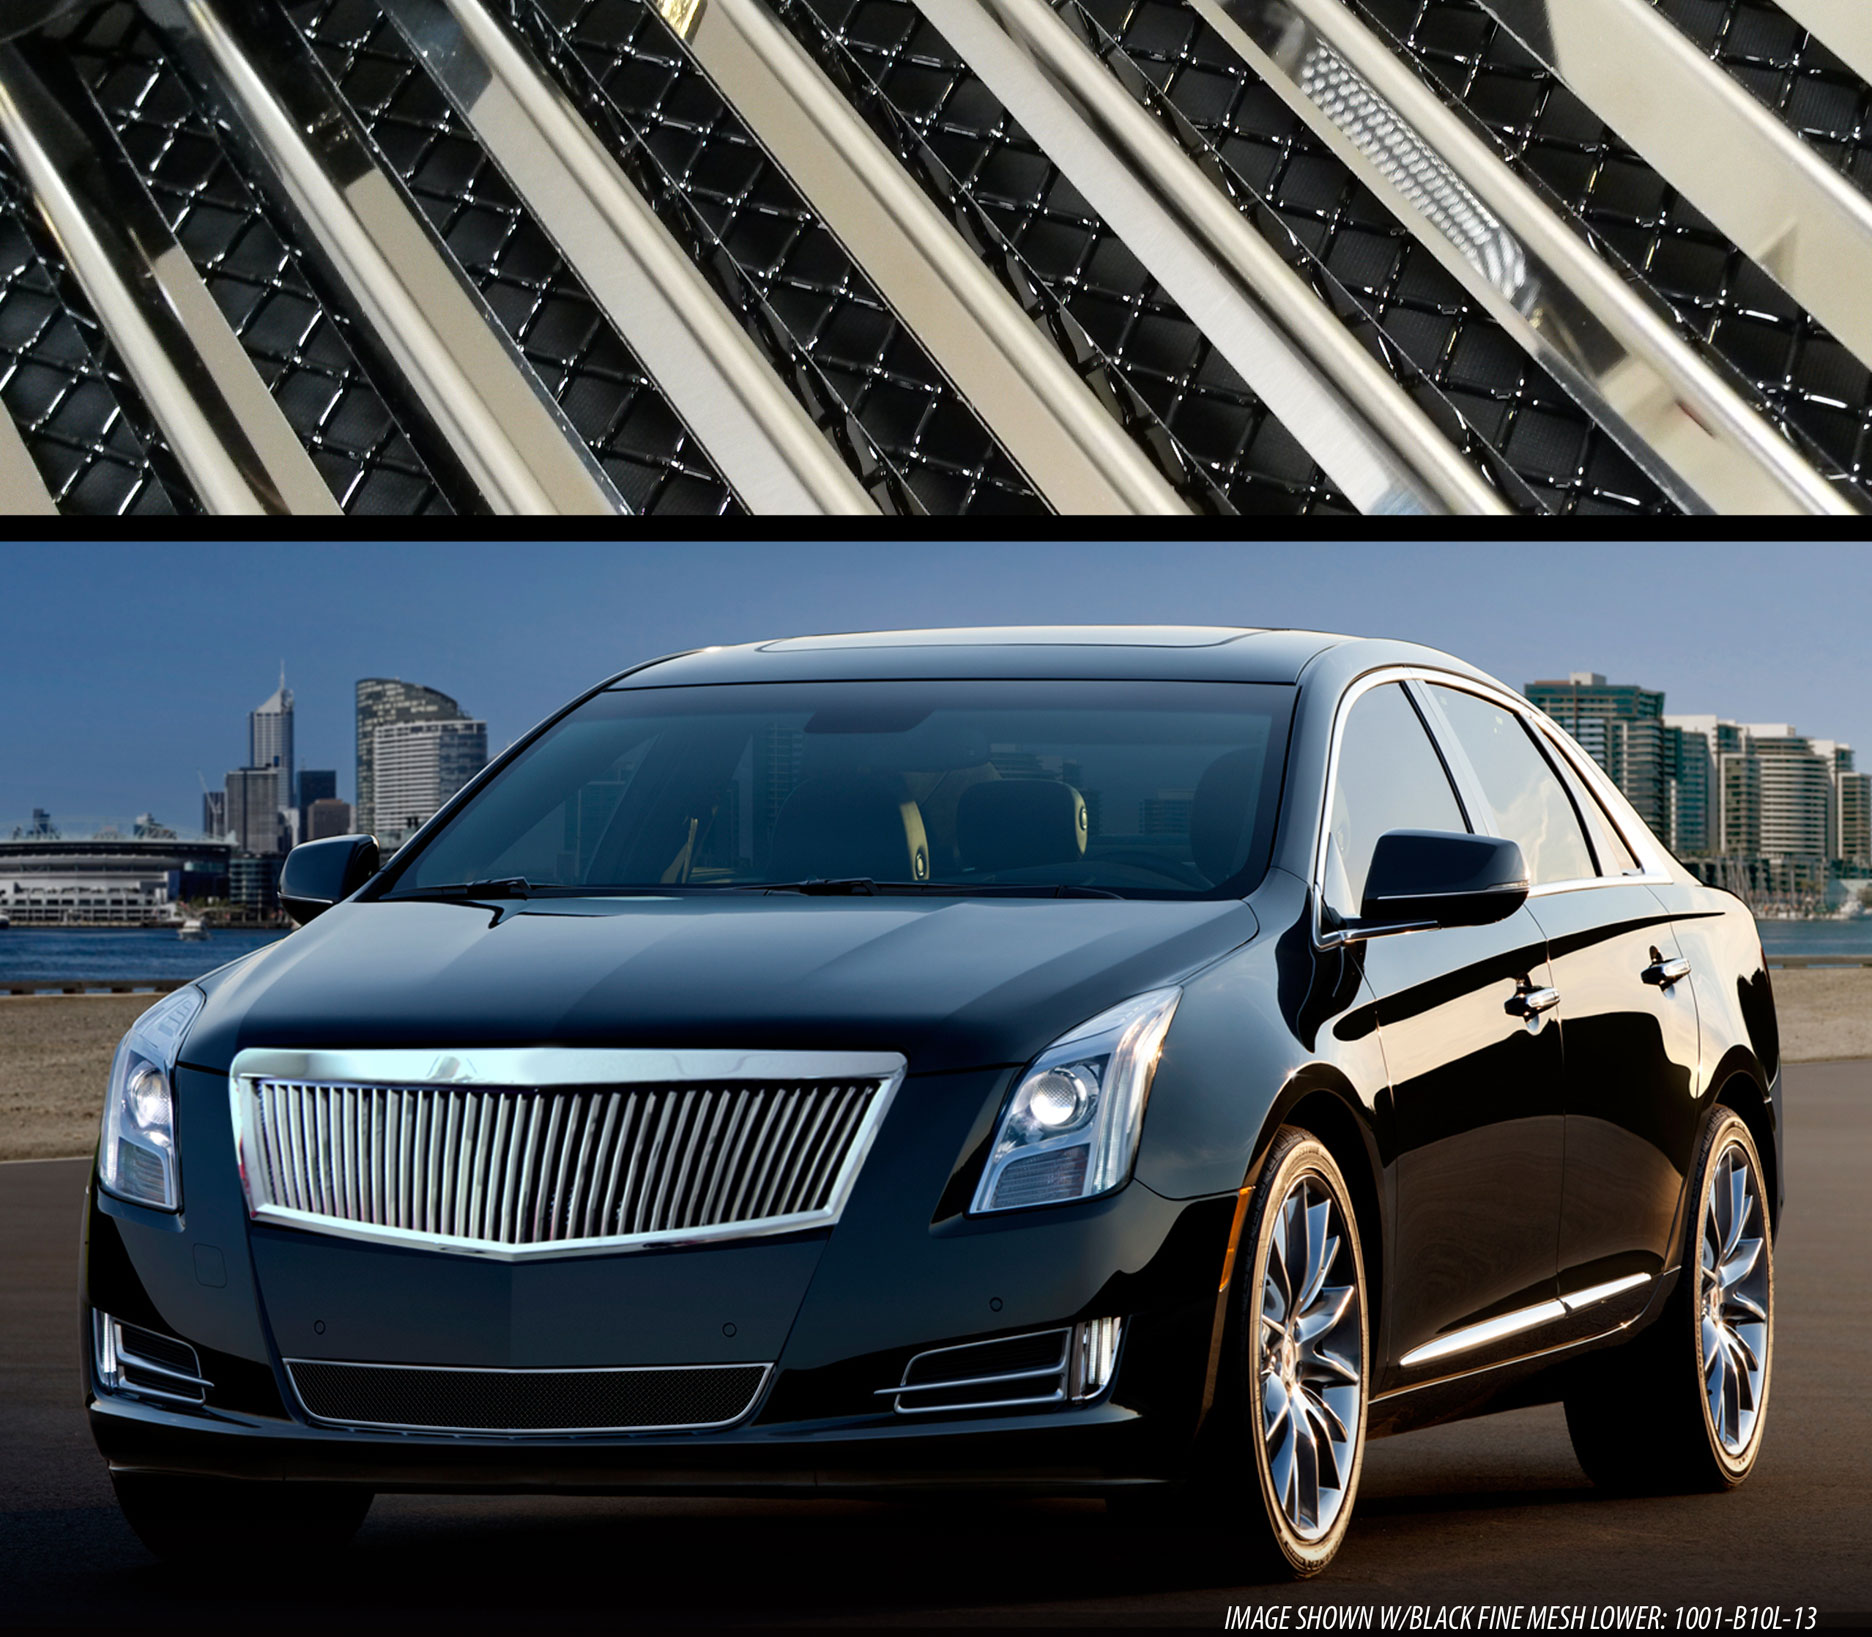 E&G Classics Cadillac XTS Grille Wing Body Kit